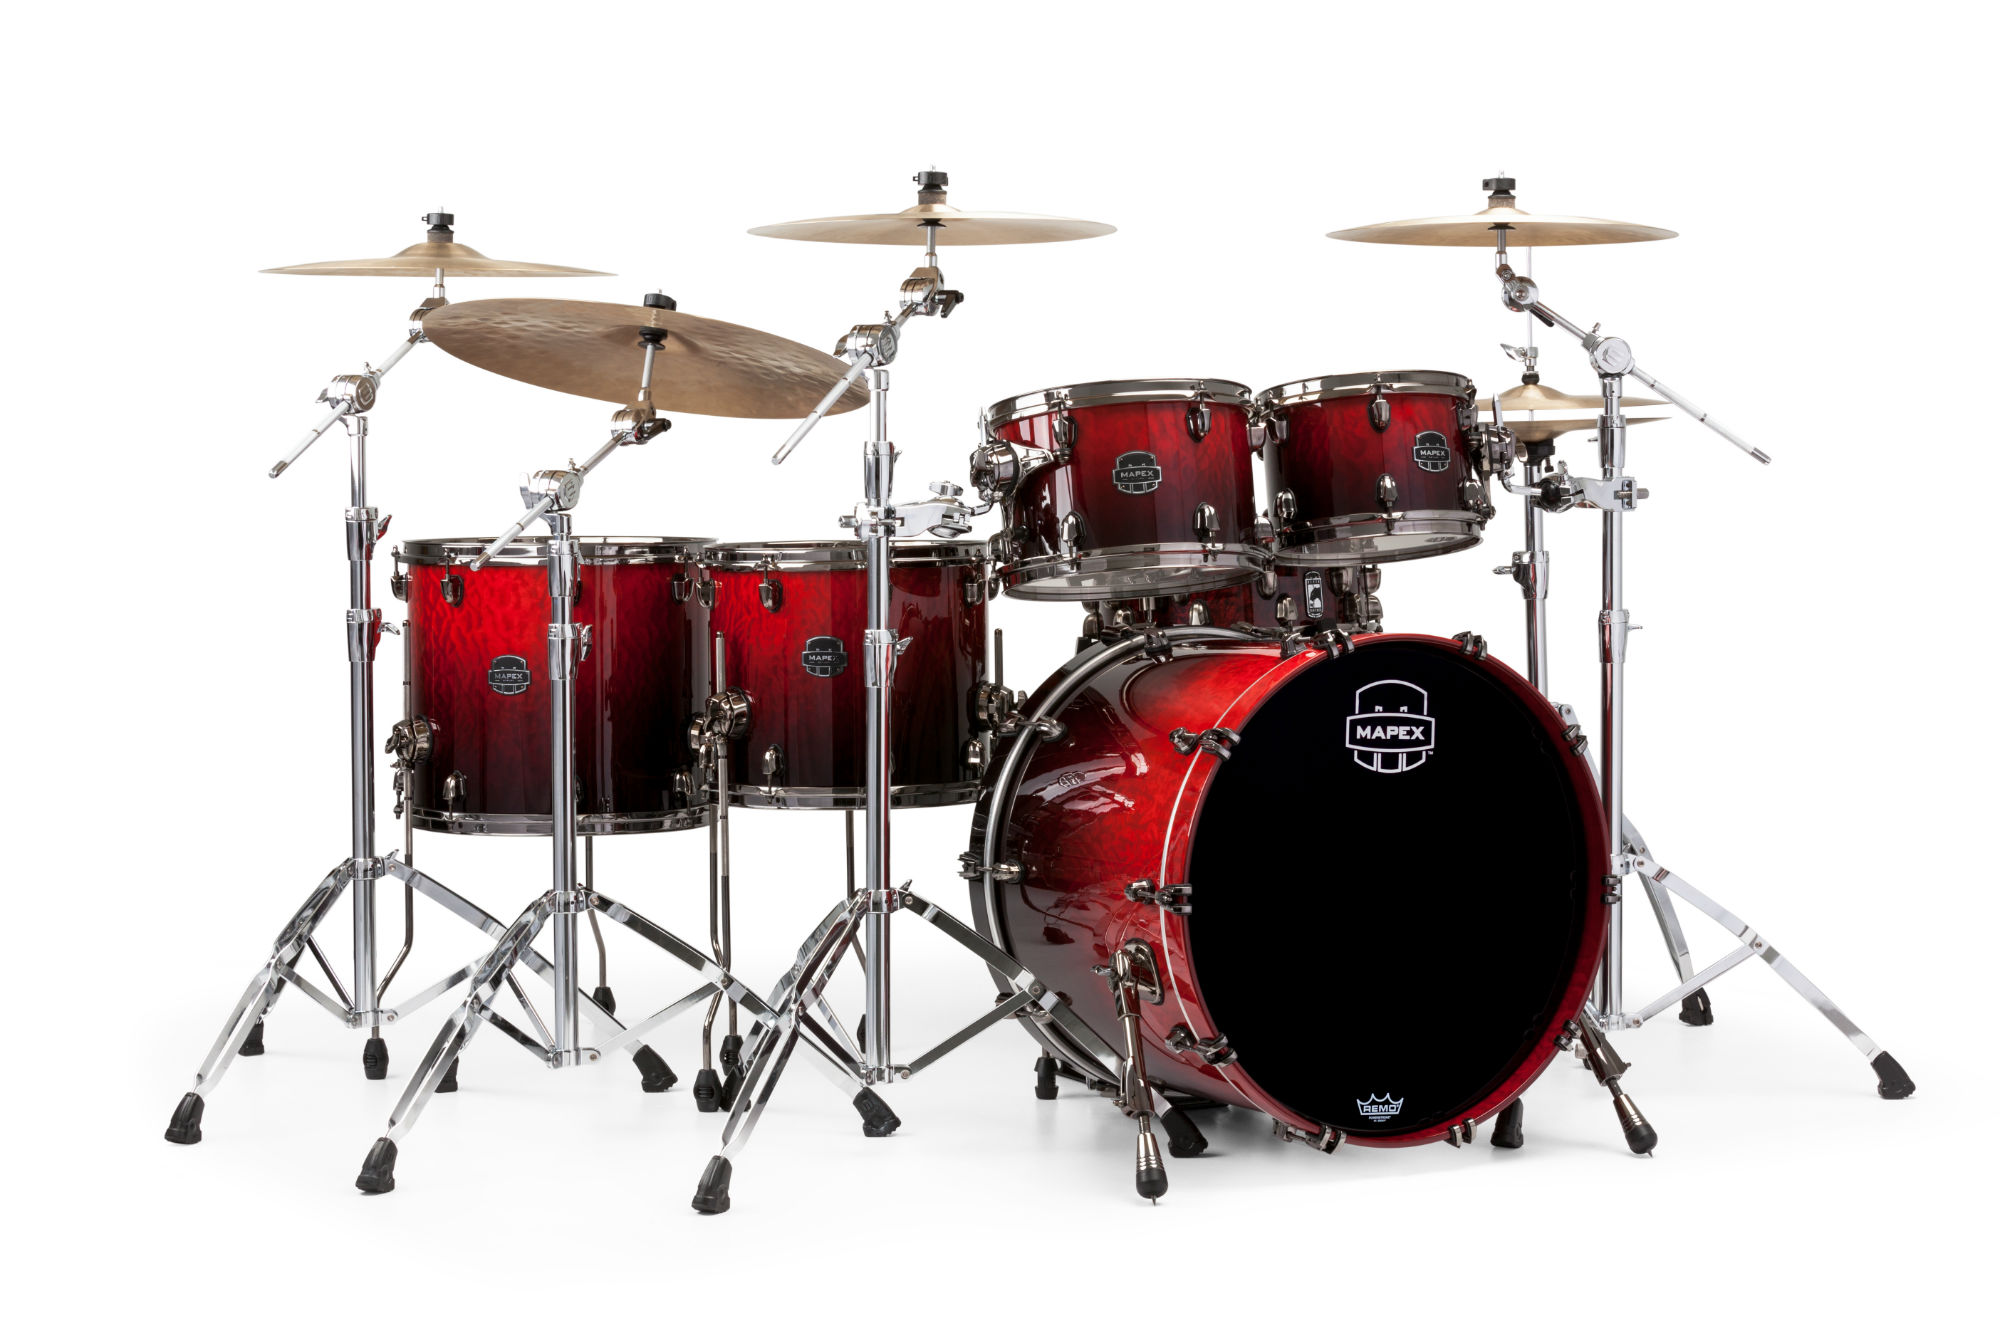 Mapex Saturn V MH Exotic Studioease 5-piece shell pack with SONIClear Edge - SV628XUBRLE - Cherry Mist Rosewood Burl